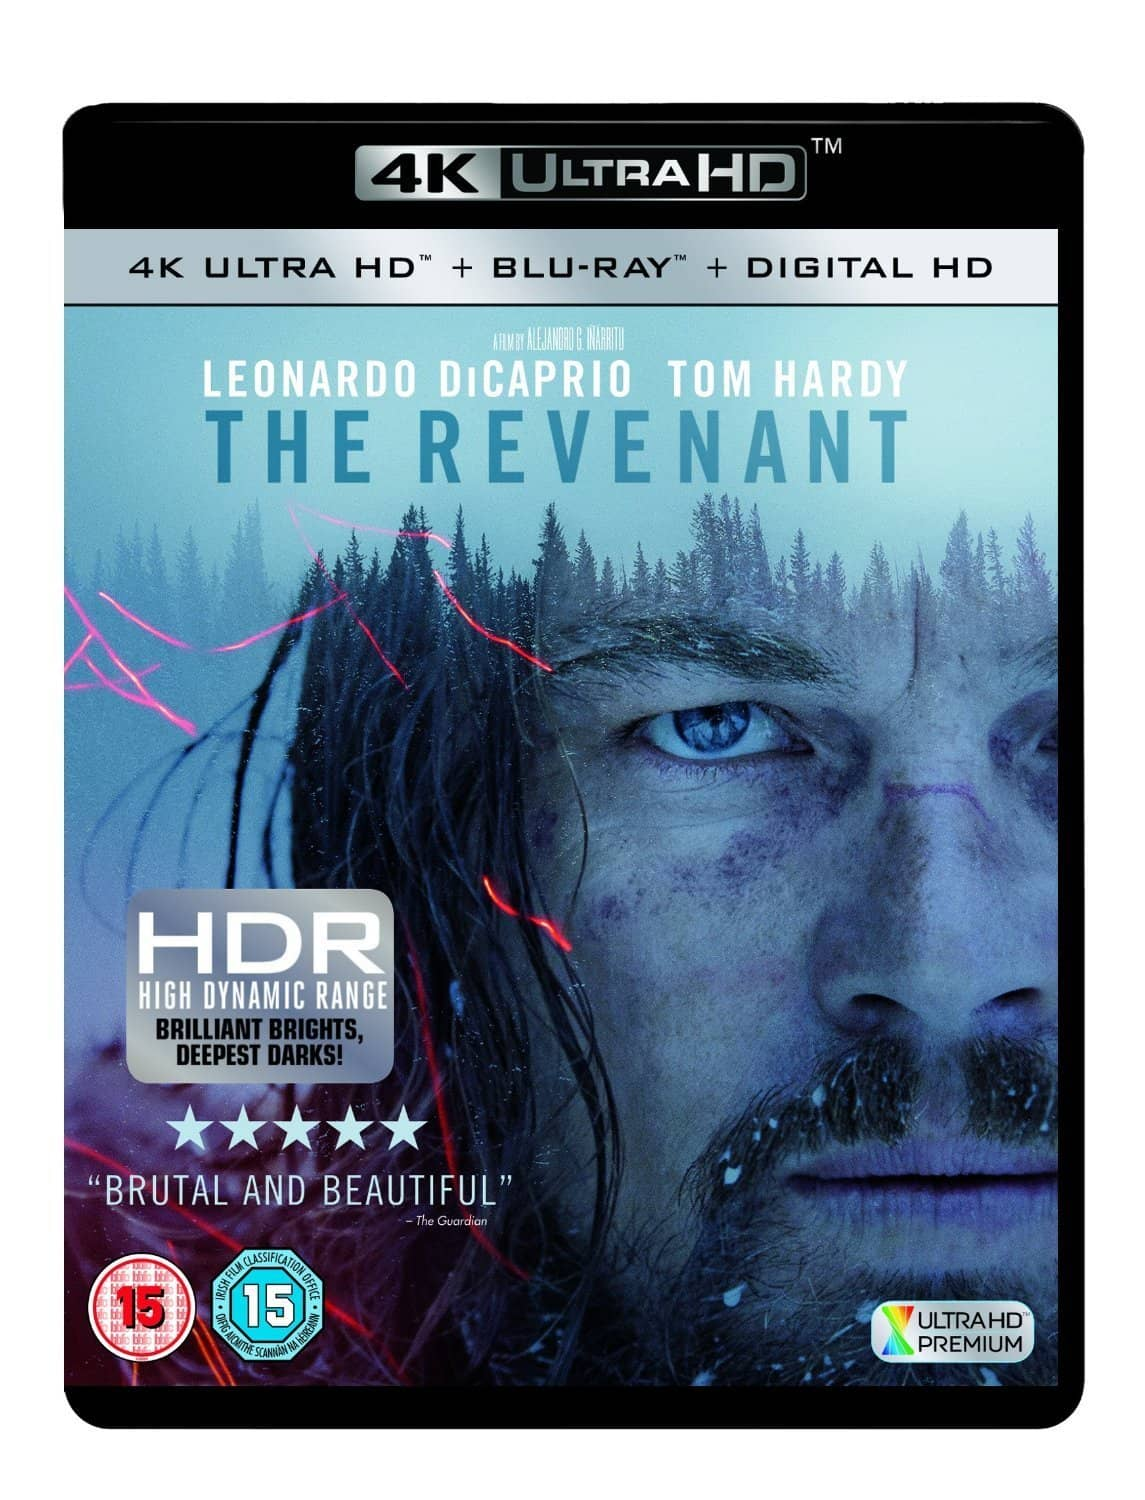 The Revenant RIP 4K 2015 HDR 2160P